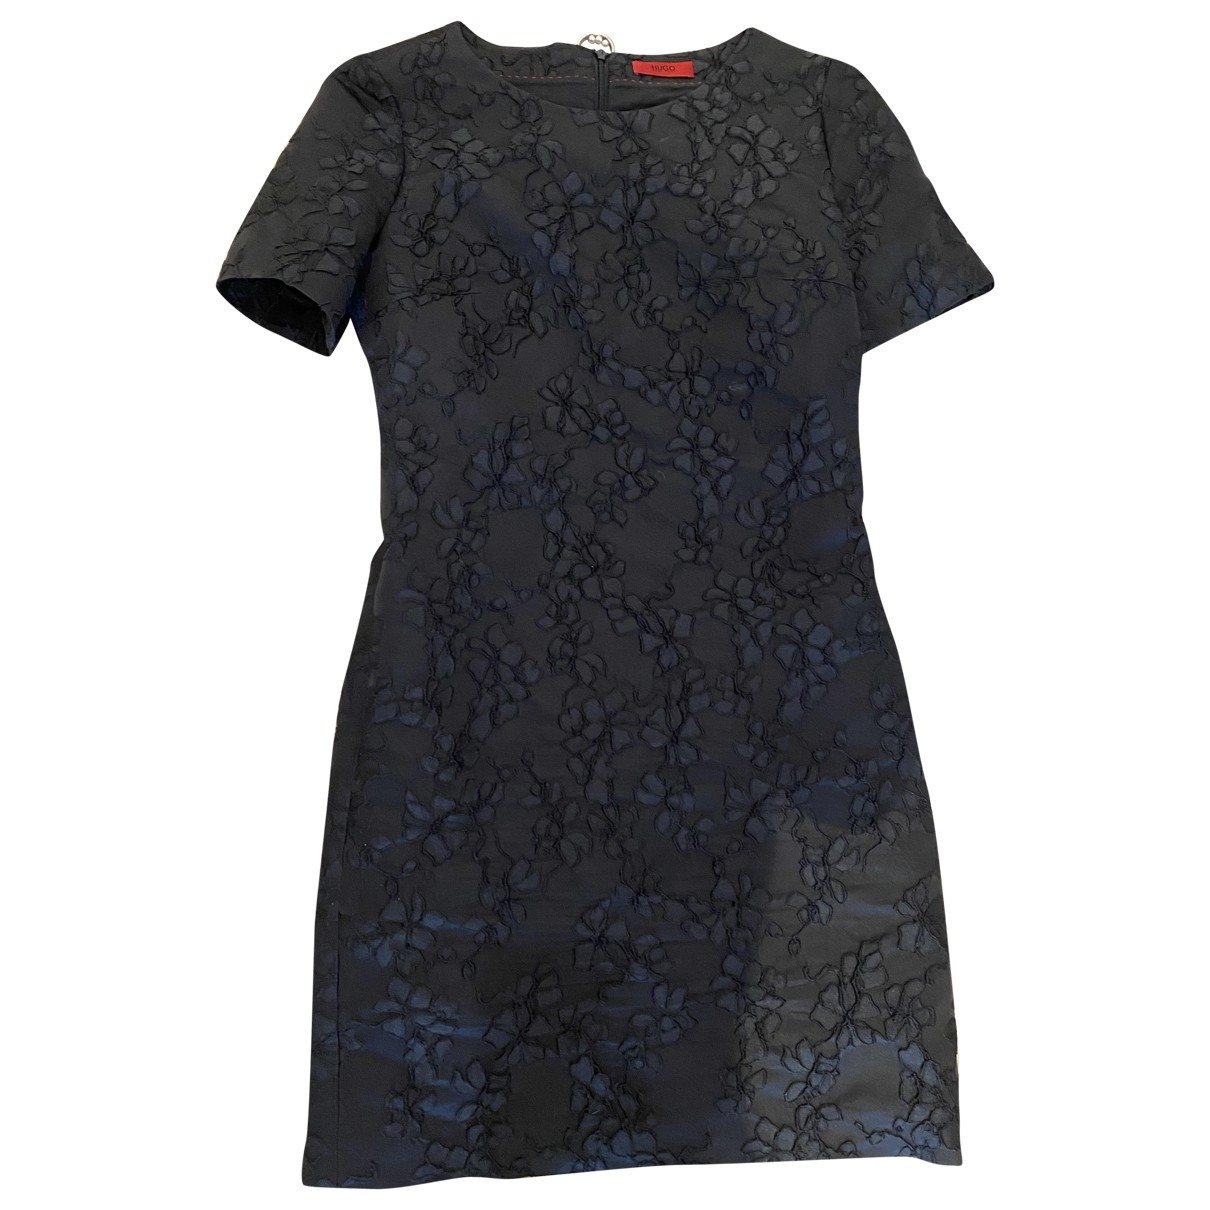 Hugo Boss \N Black dress for Women 38 IT